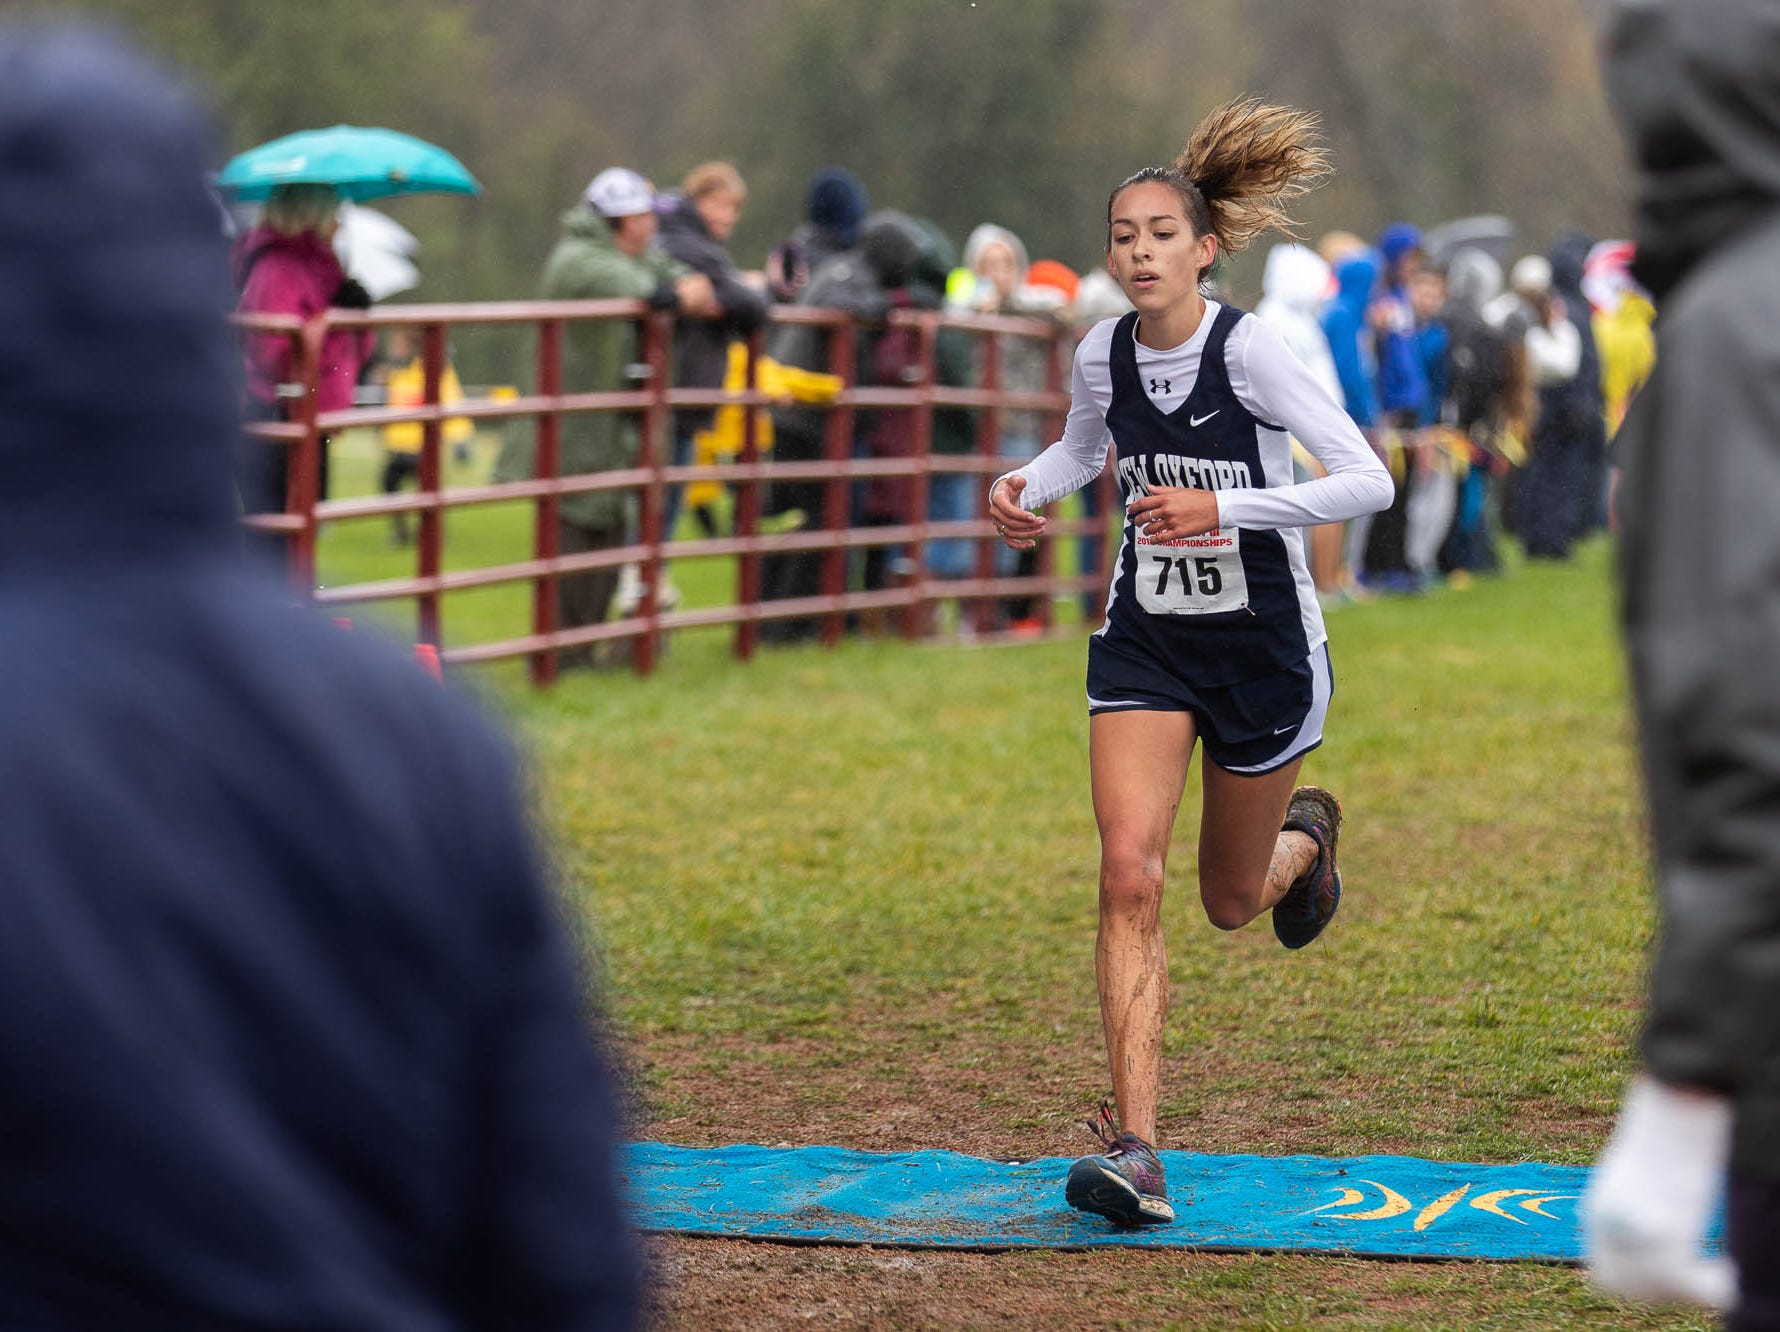 New Oxford's Tori Richter races in the Girls AAA race during the PIAA District III Cross Country Championship, Saturday, Oct. 27, 2018, at Big Spring High School in Newville.